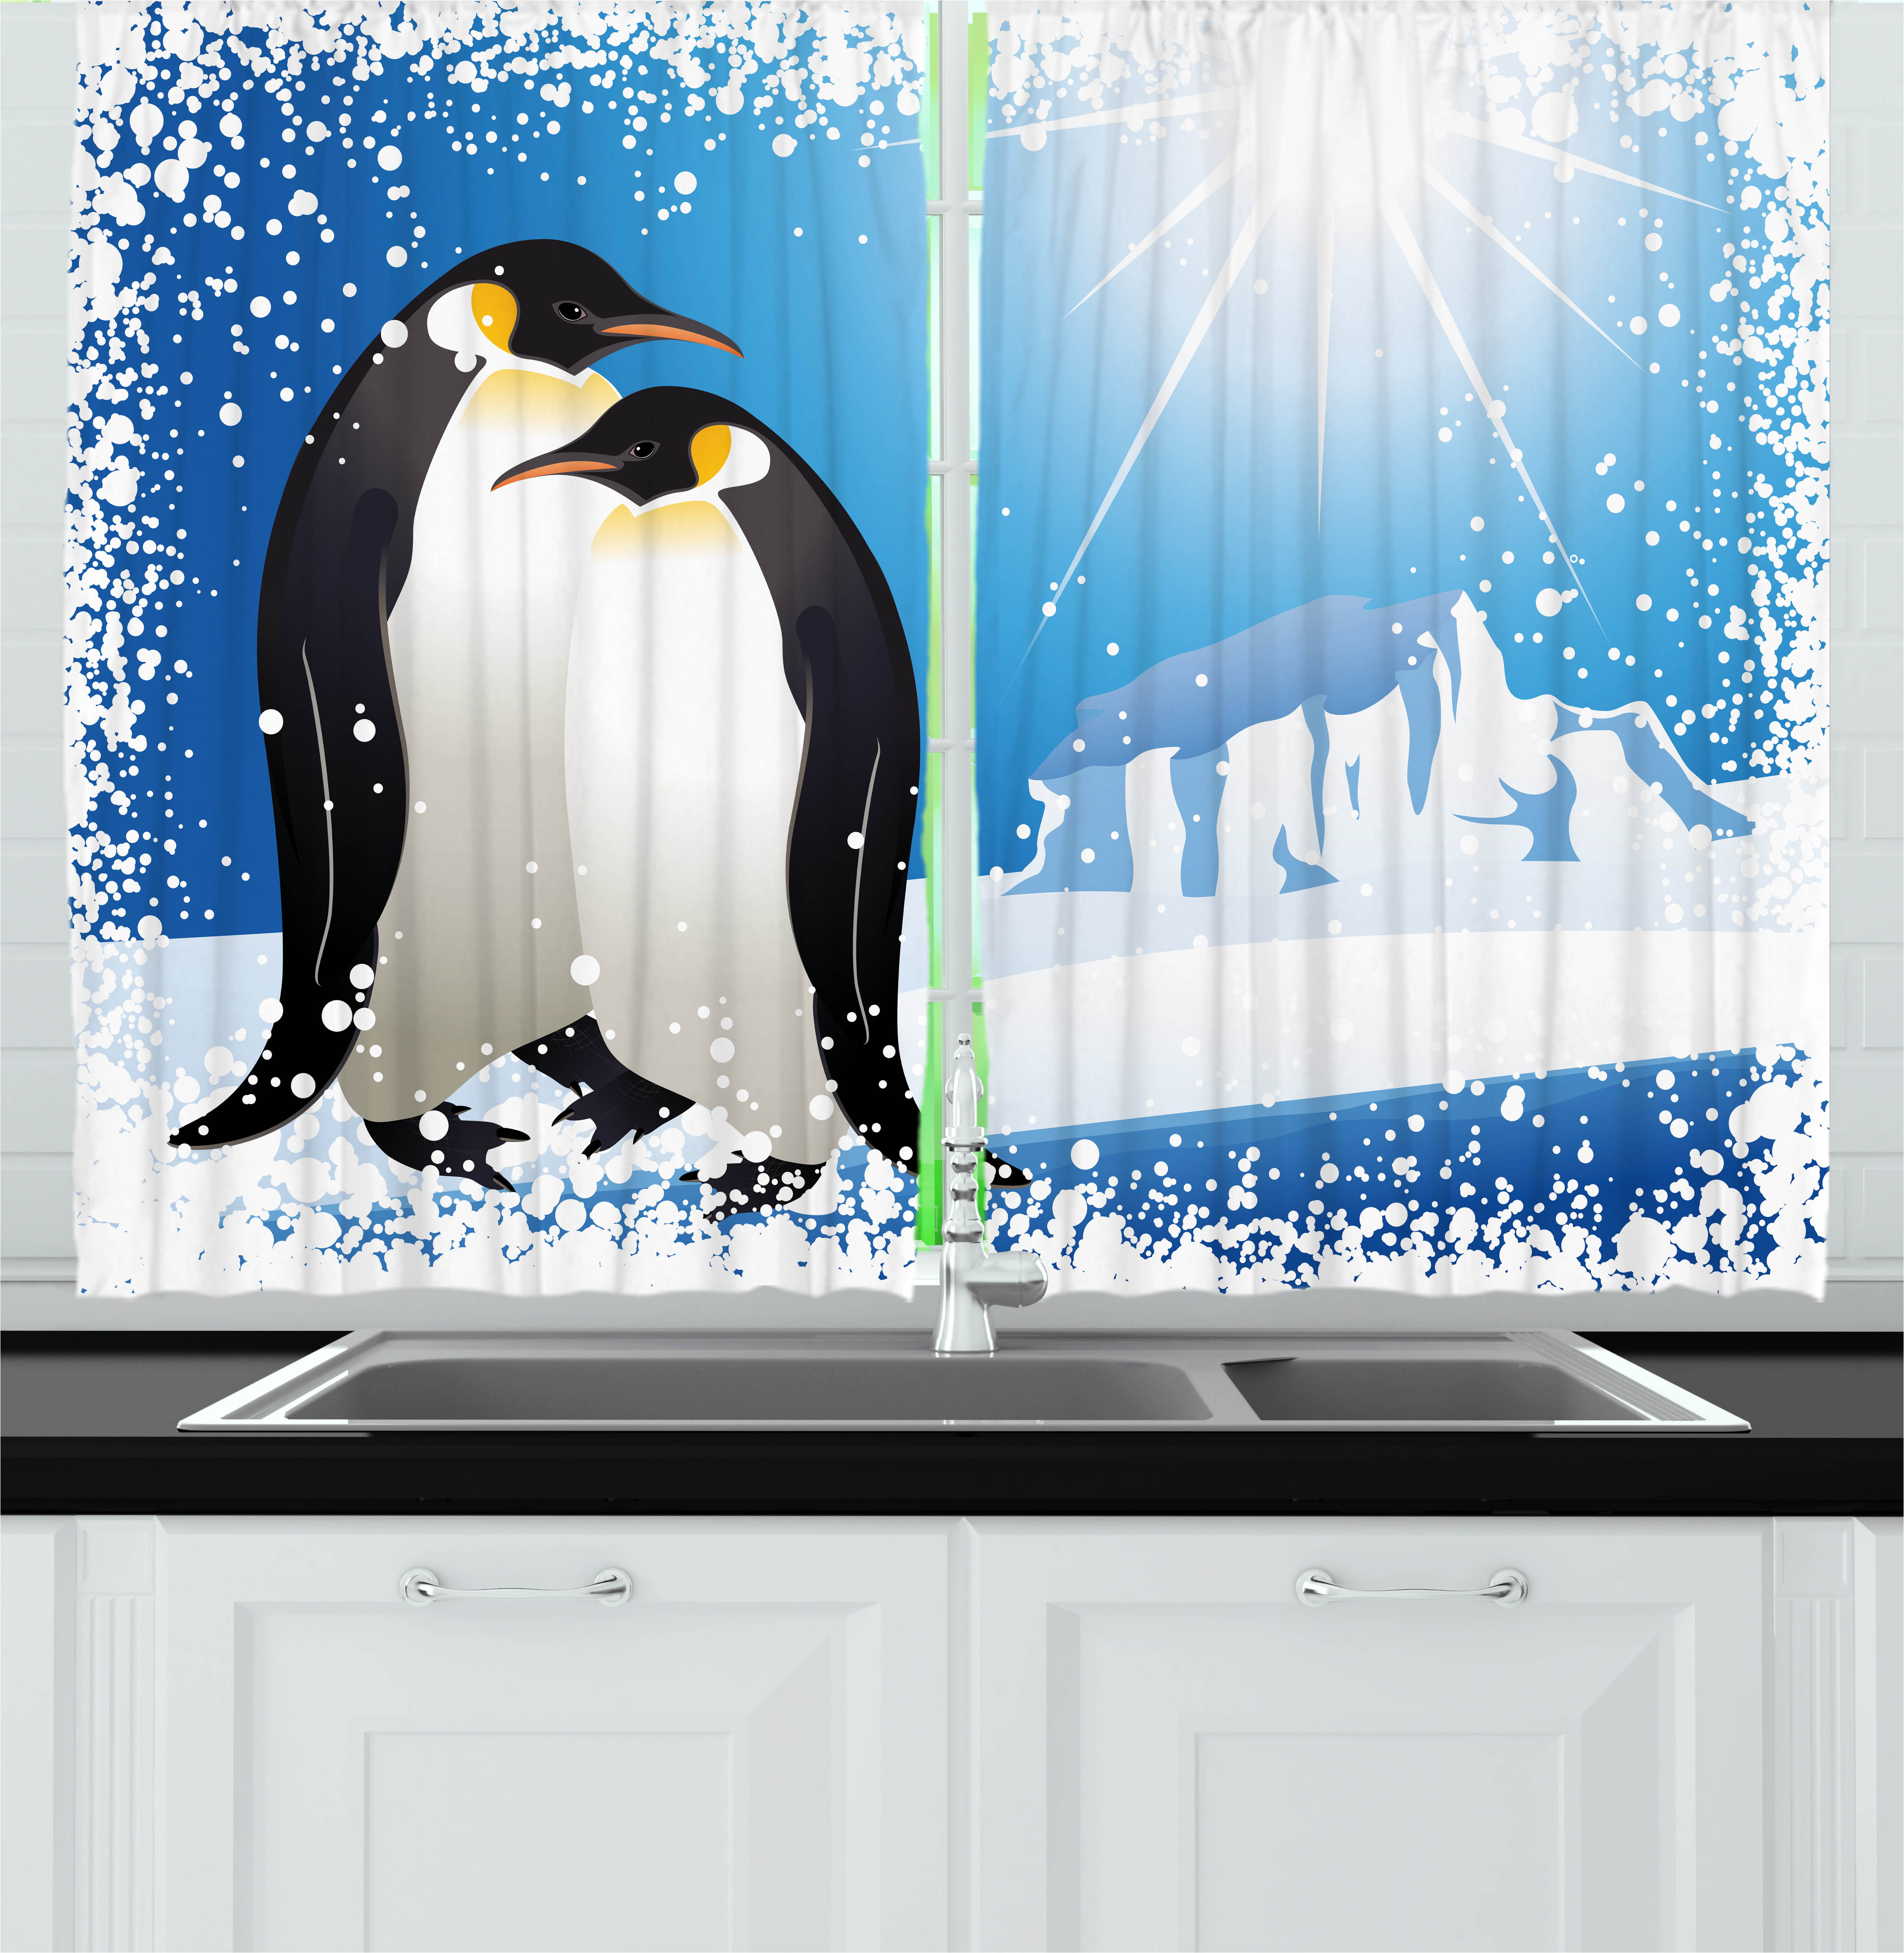 Winter Curtains 2 Panels Set, Cute Penguins on Iceland at Arctic Snowy Frozen Climate Kids Illustration, Window Drapes for Living Room Bedroom, 55W X 39L Inches, Sky Blue White Black, by Ambesonne